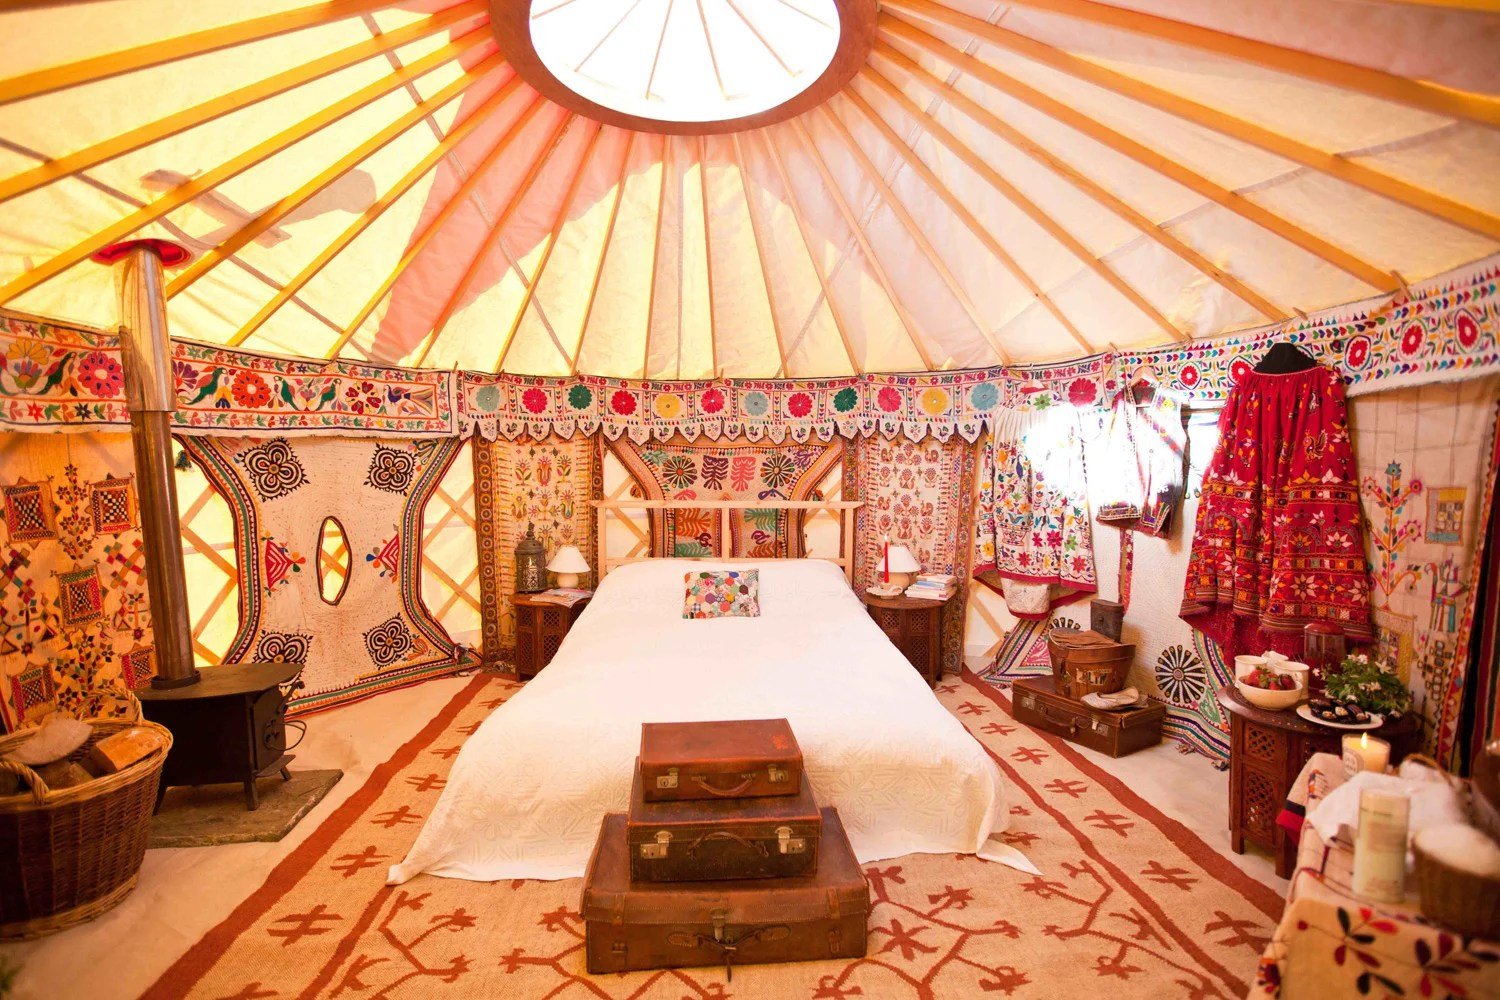 From helicopters to fourposter beds how to glamp your